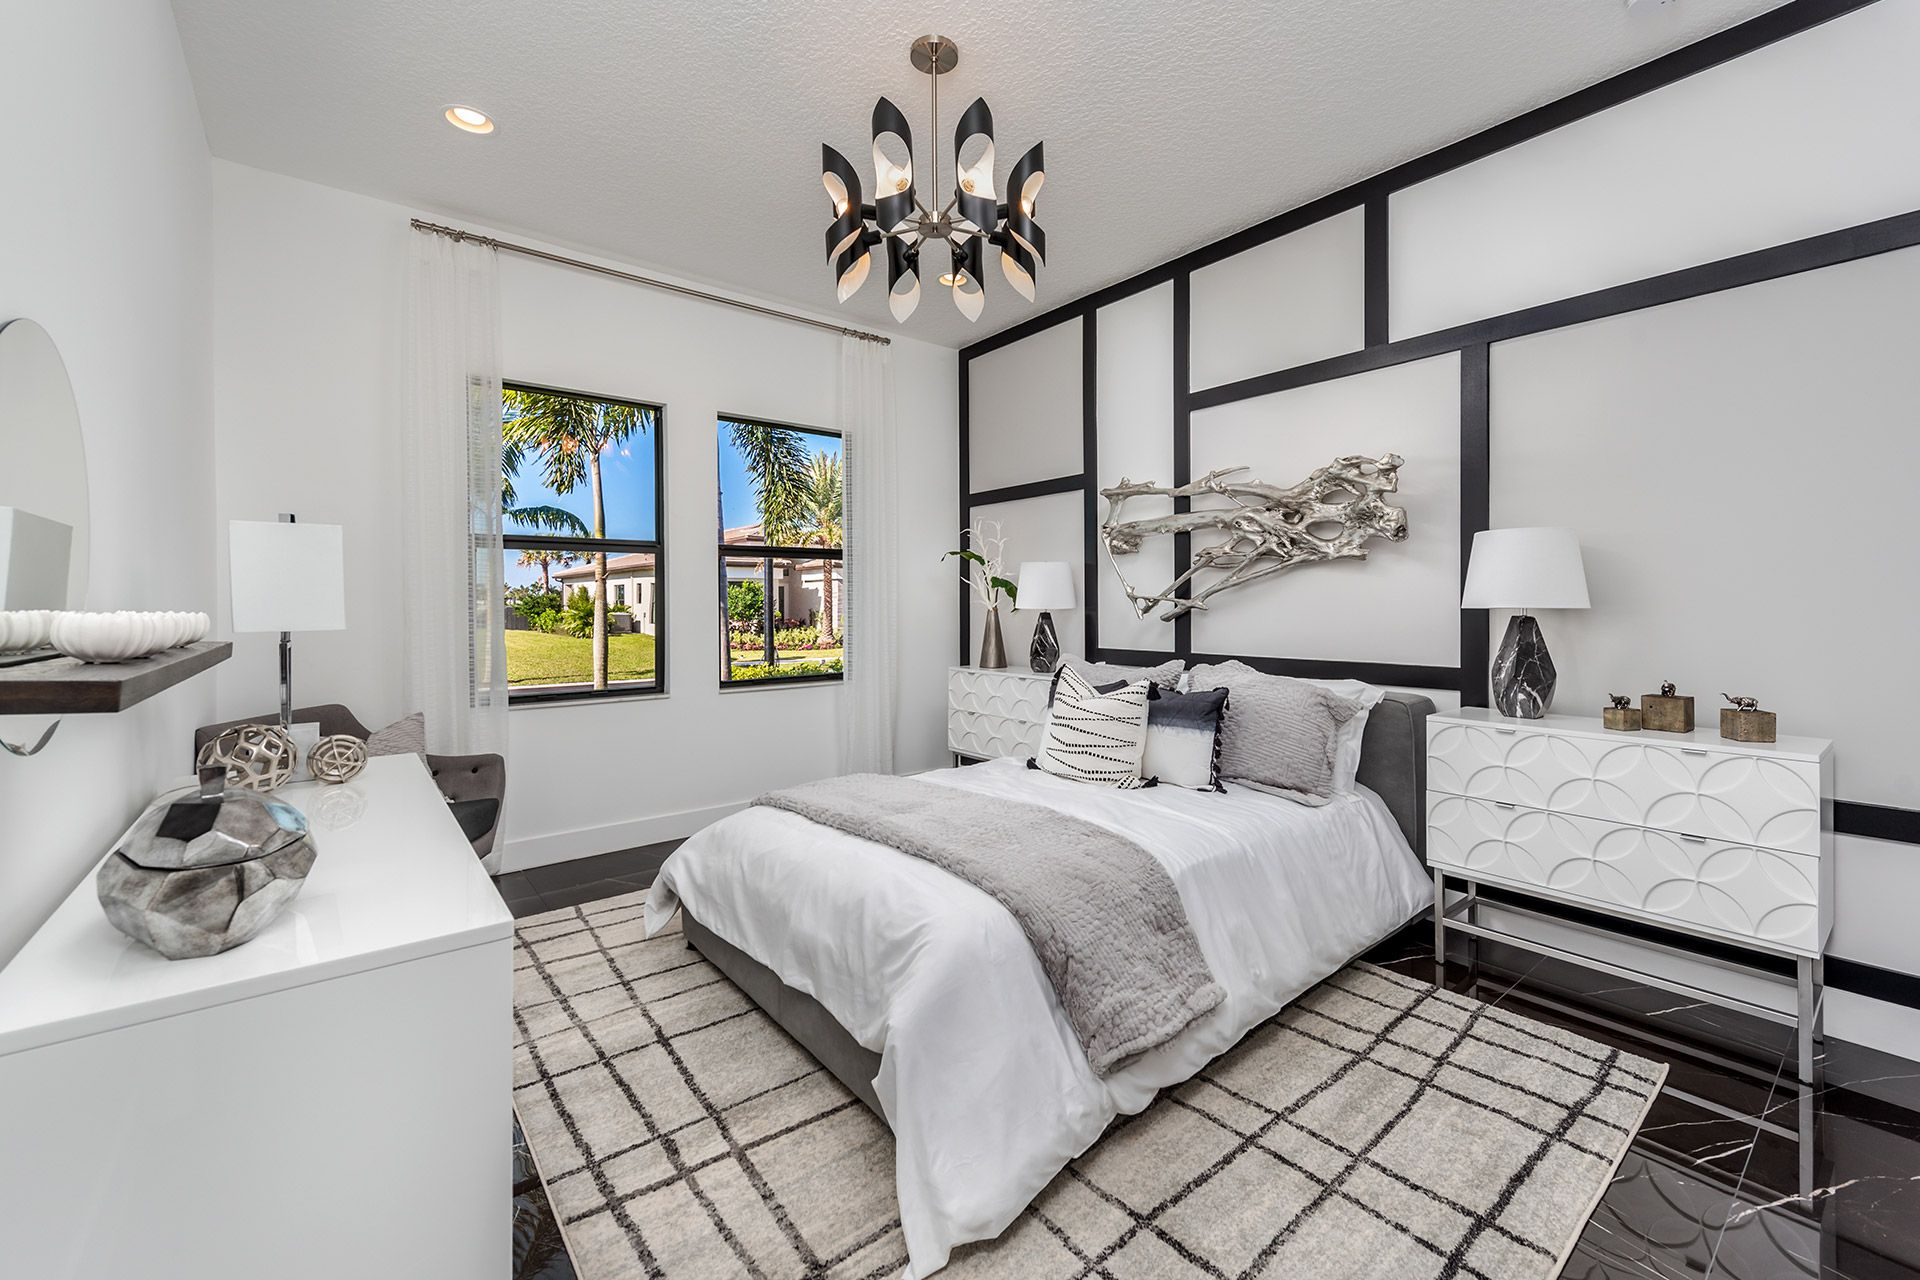 Bedroom featured in the Polynesia By GL Homes in Palm Beach County, FL